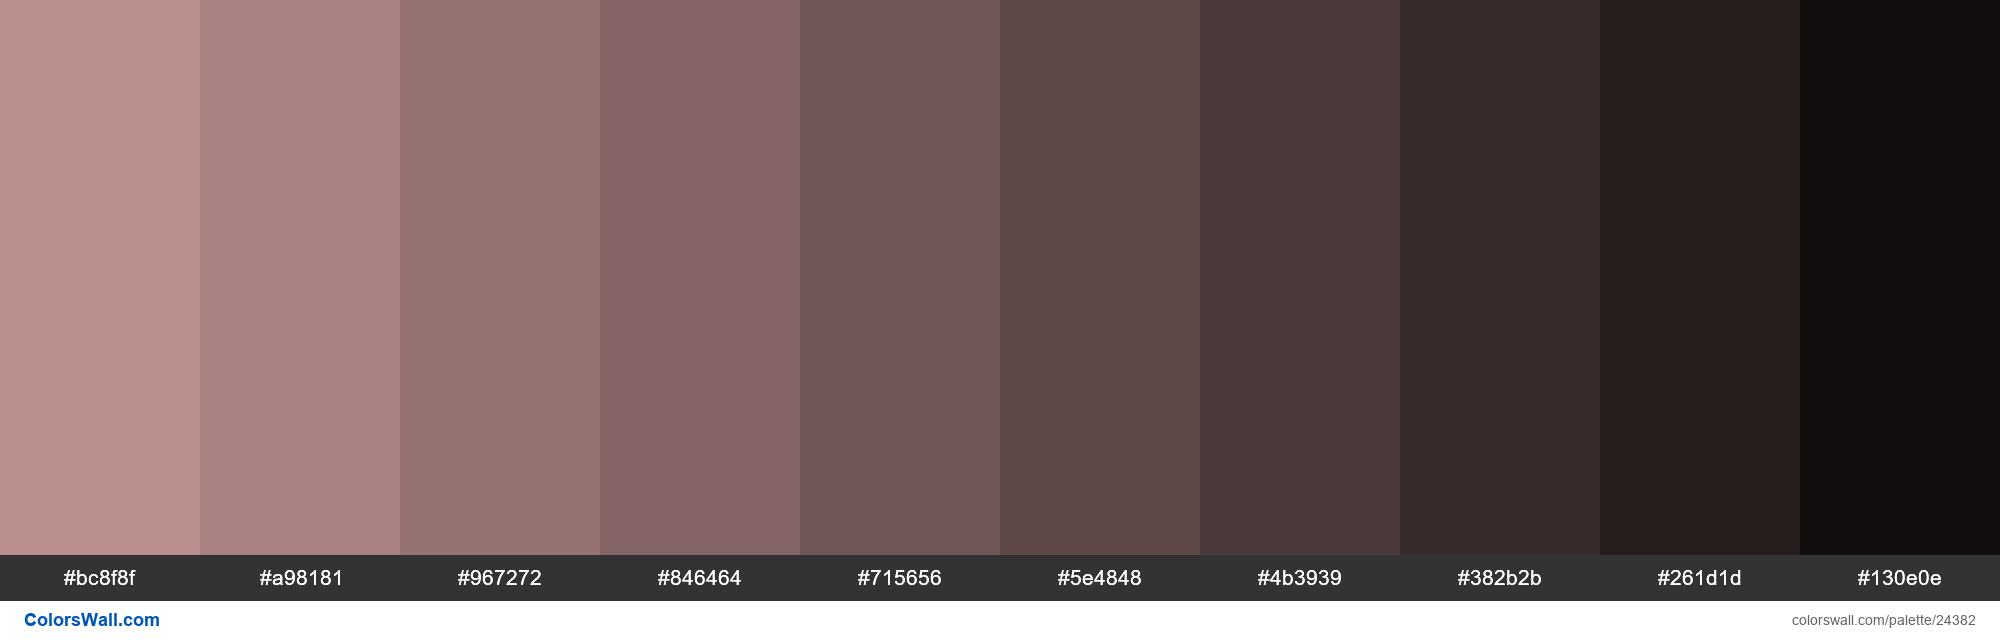 Shades of Rosy Brown #BC8F8F hex color - #24382